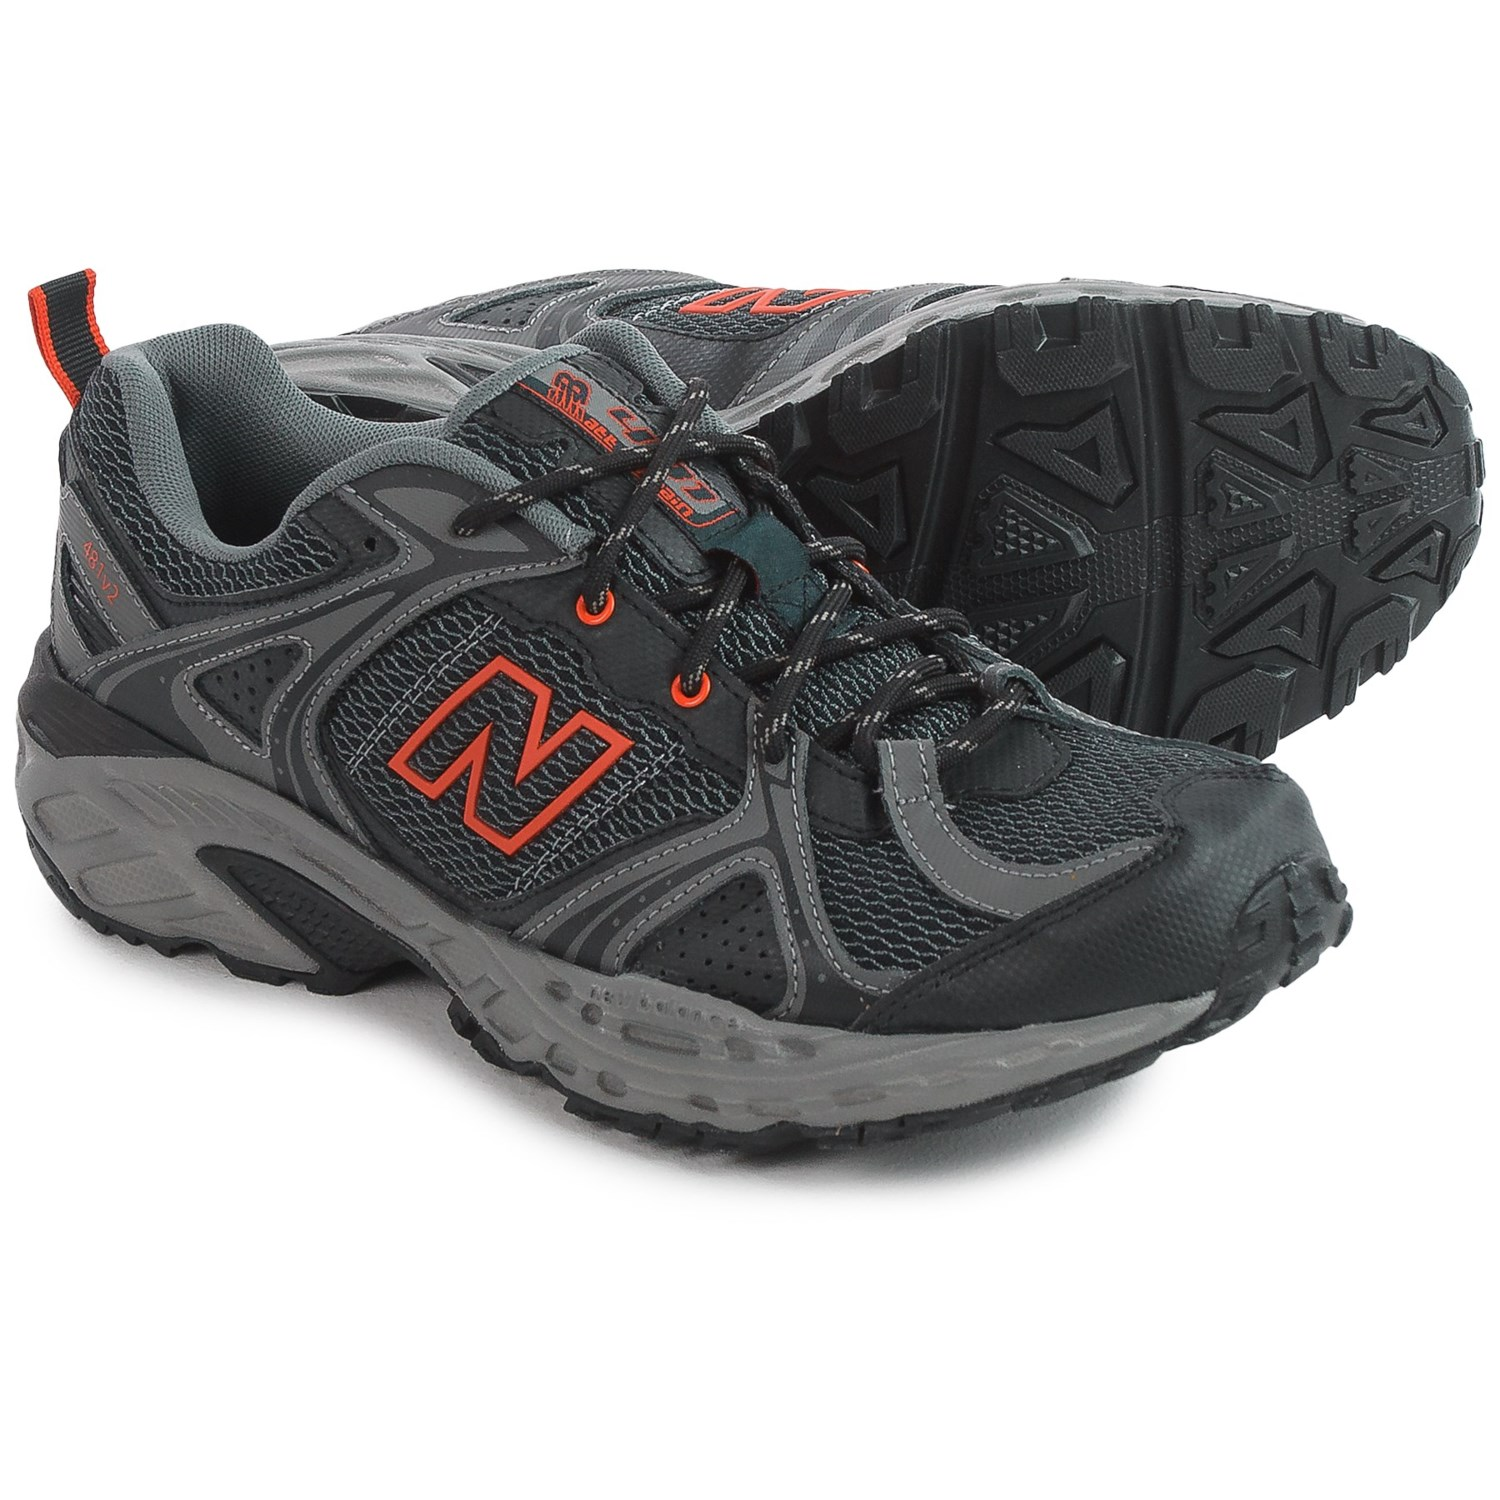 New Balance Mt481 Trail Running Shoes For Men Save 51